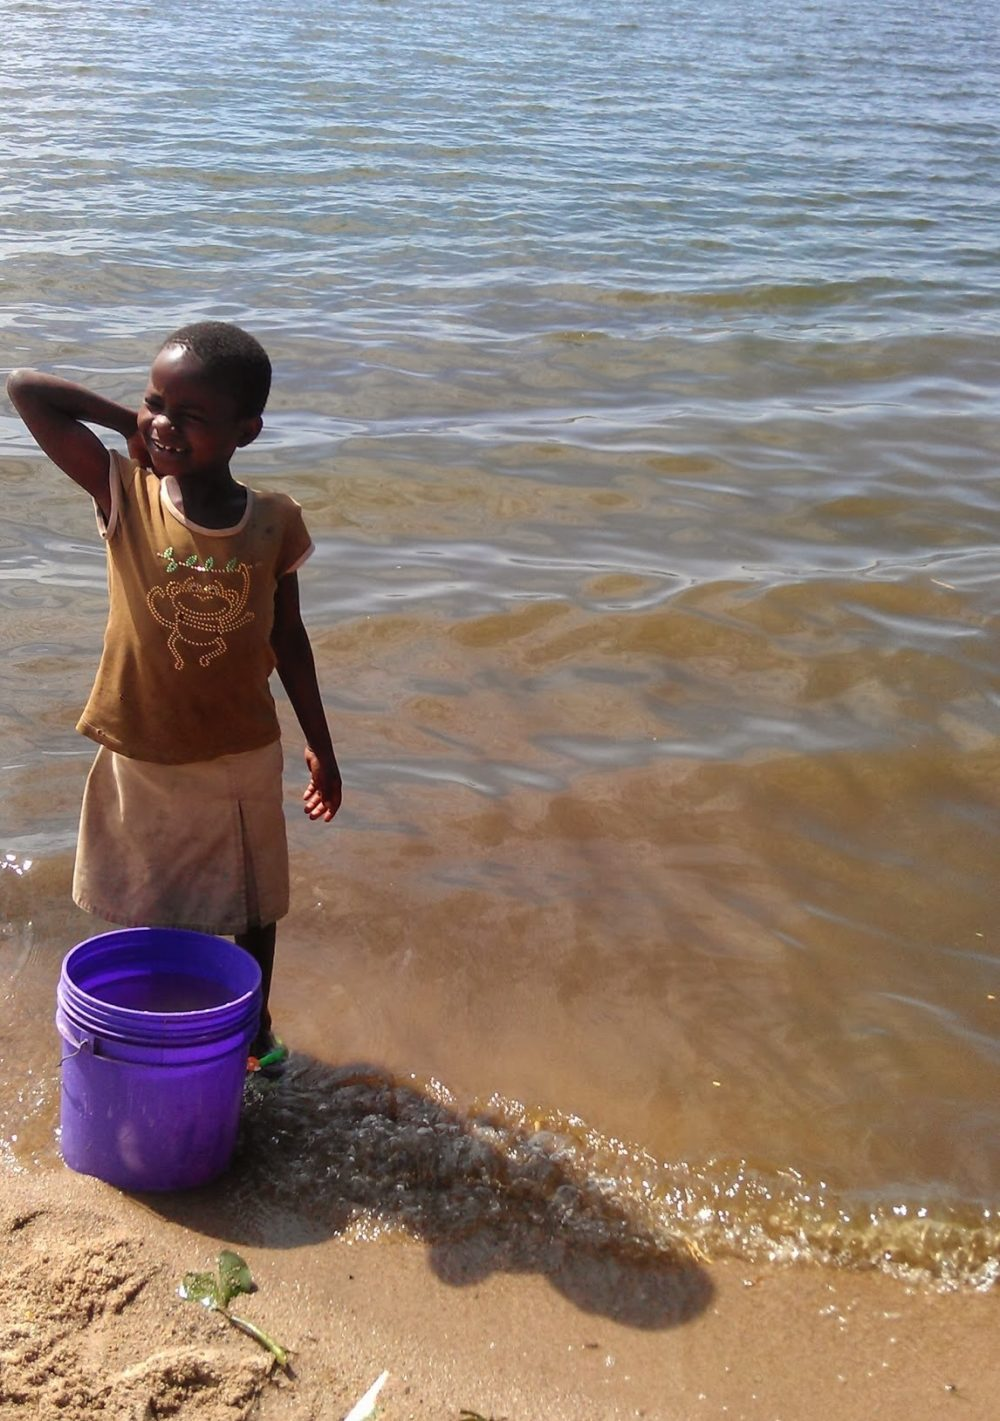 Little girl collecting water from an open water source - Access to safe water is crucial for disease prevention. Copyright Anouk Gouvras